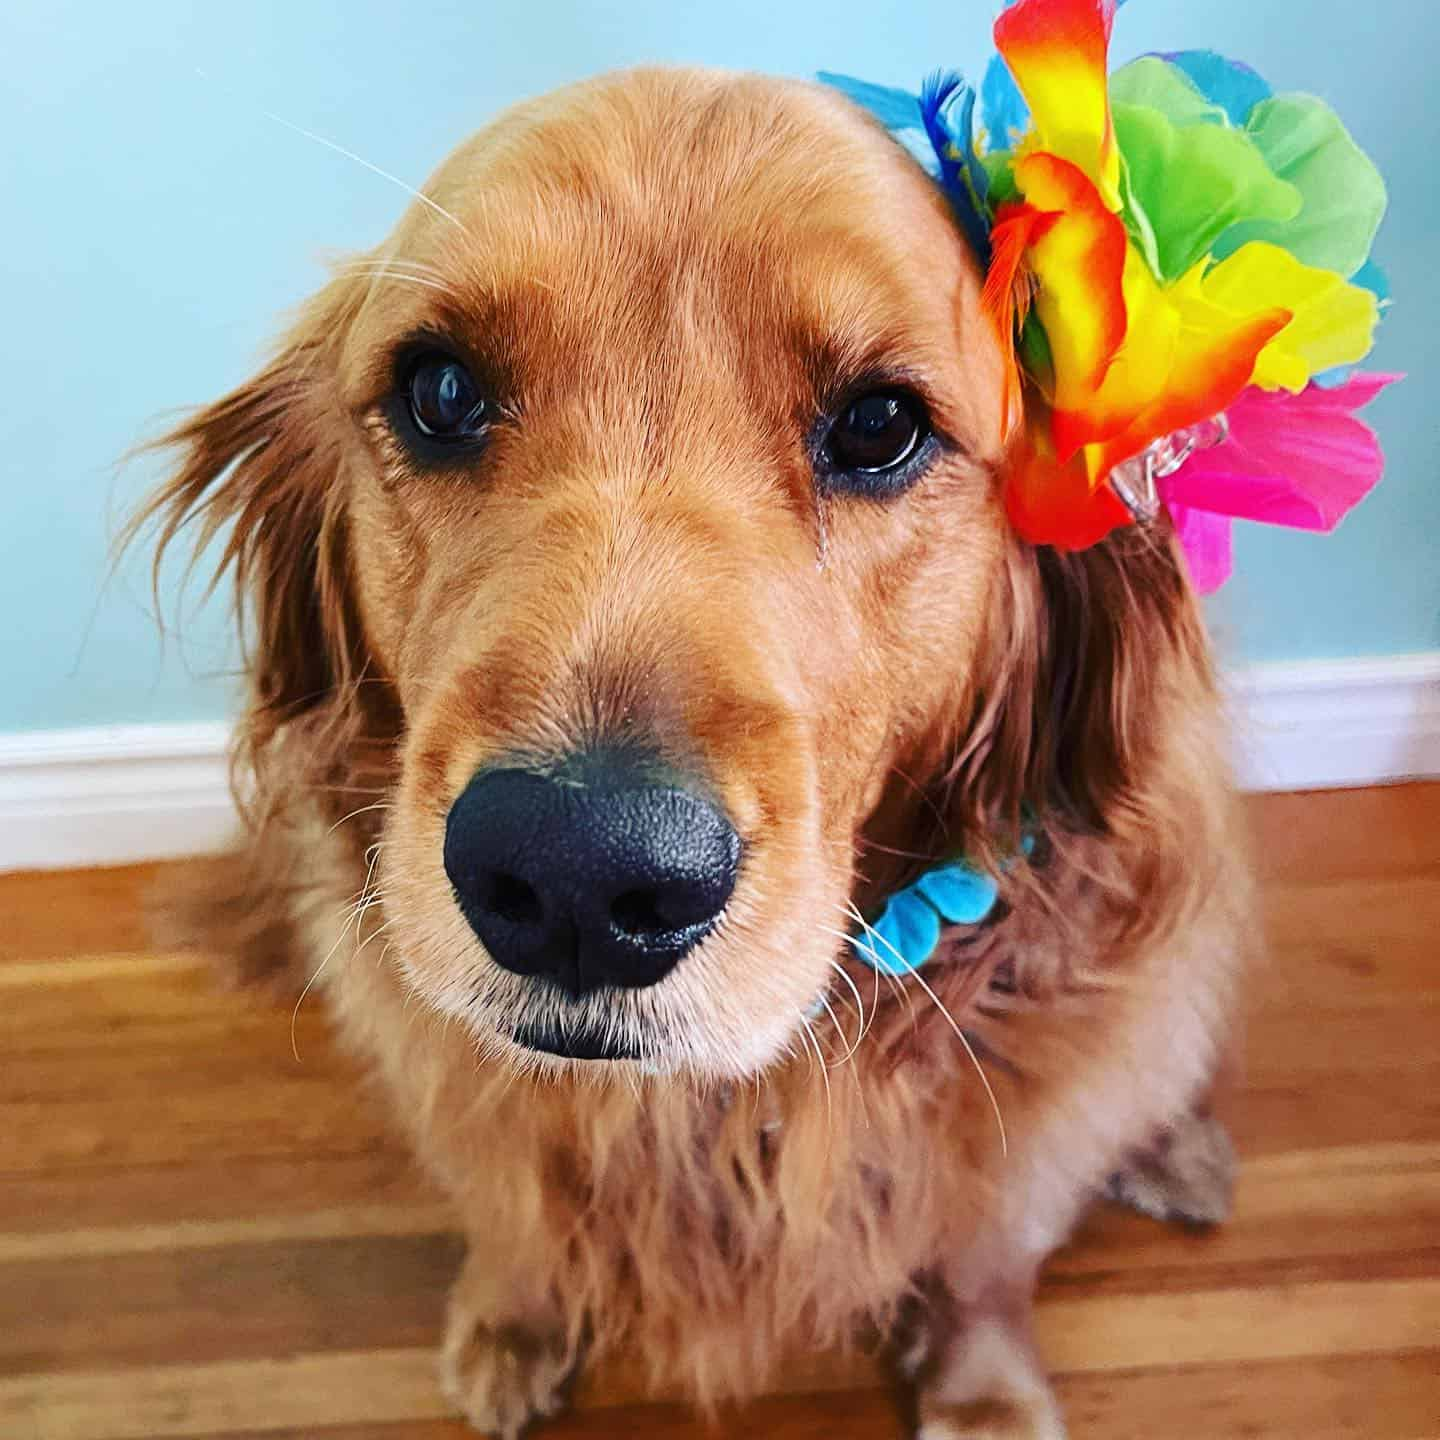 adorable golden retriever with colorful flower